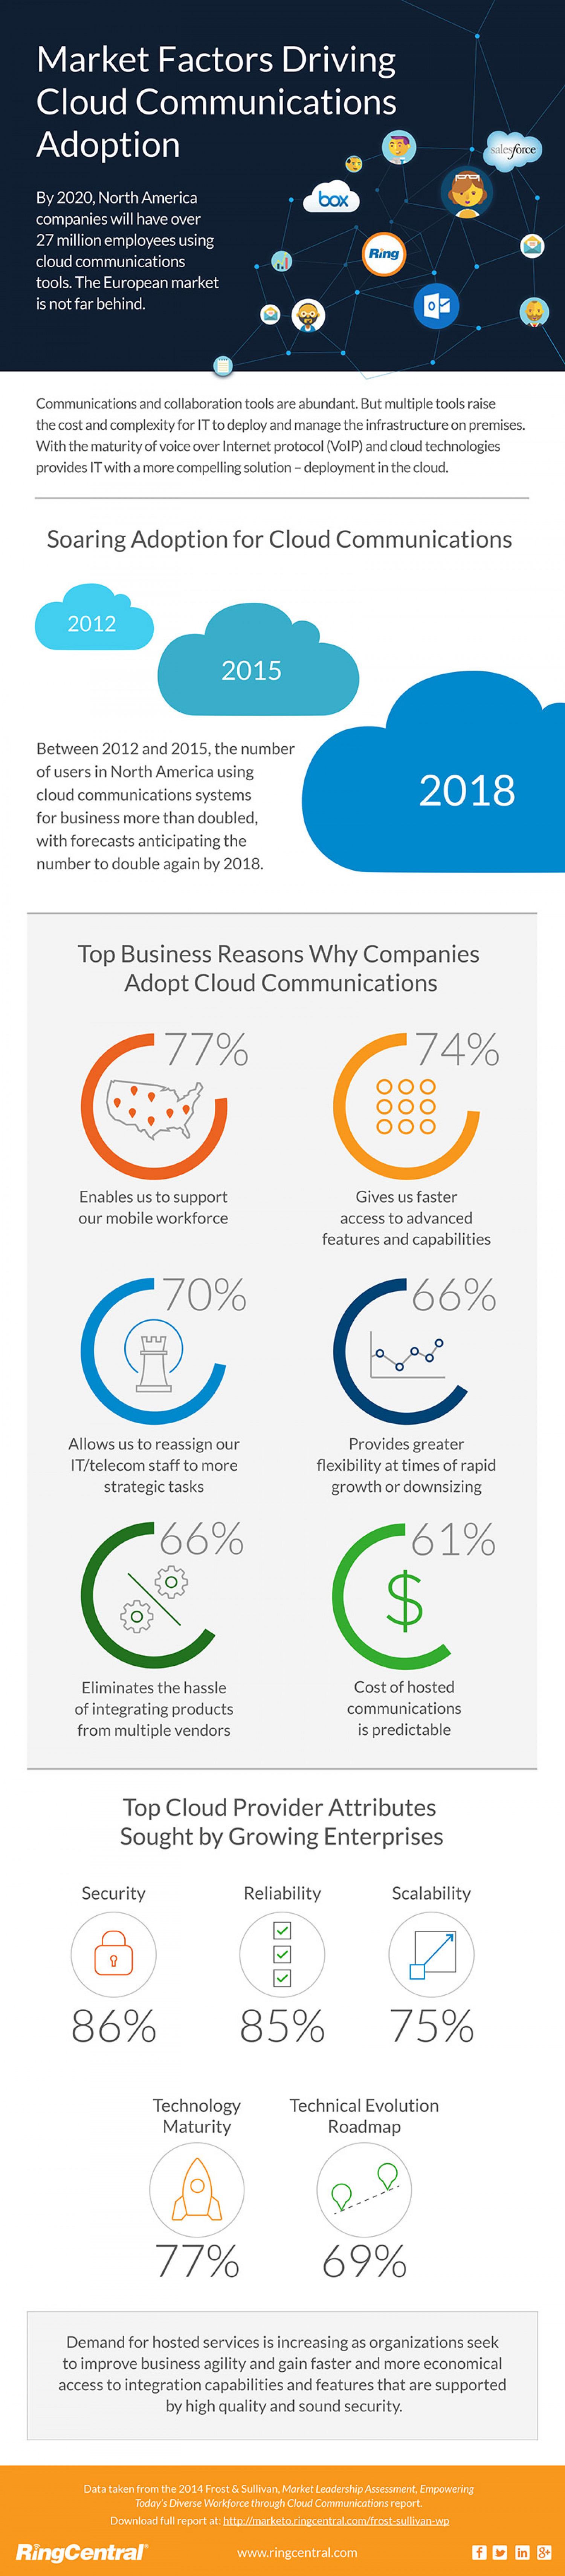 Infographic: Top Business Reasons Why Companies Adopt Cloud Communications Infographic